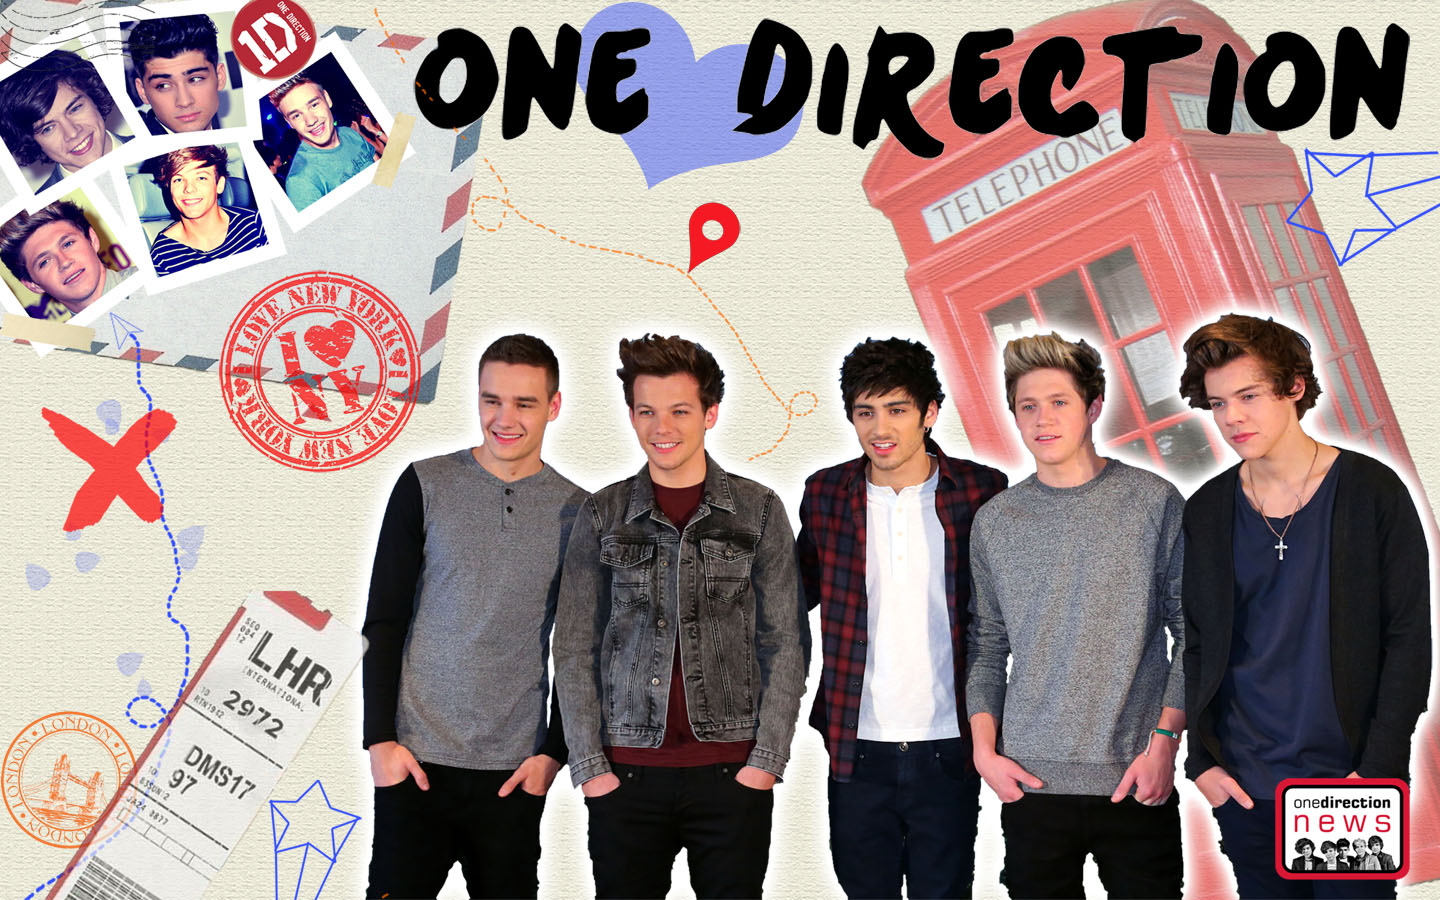 Download One Direction Cute Handsome 2014 Wallpaper pictures in high 1440x900